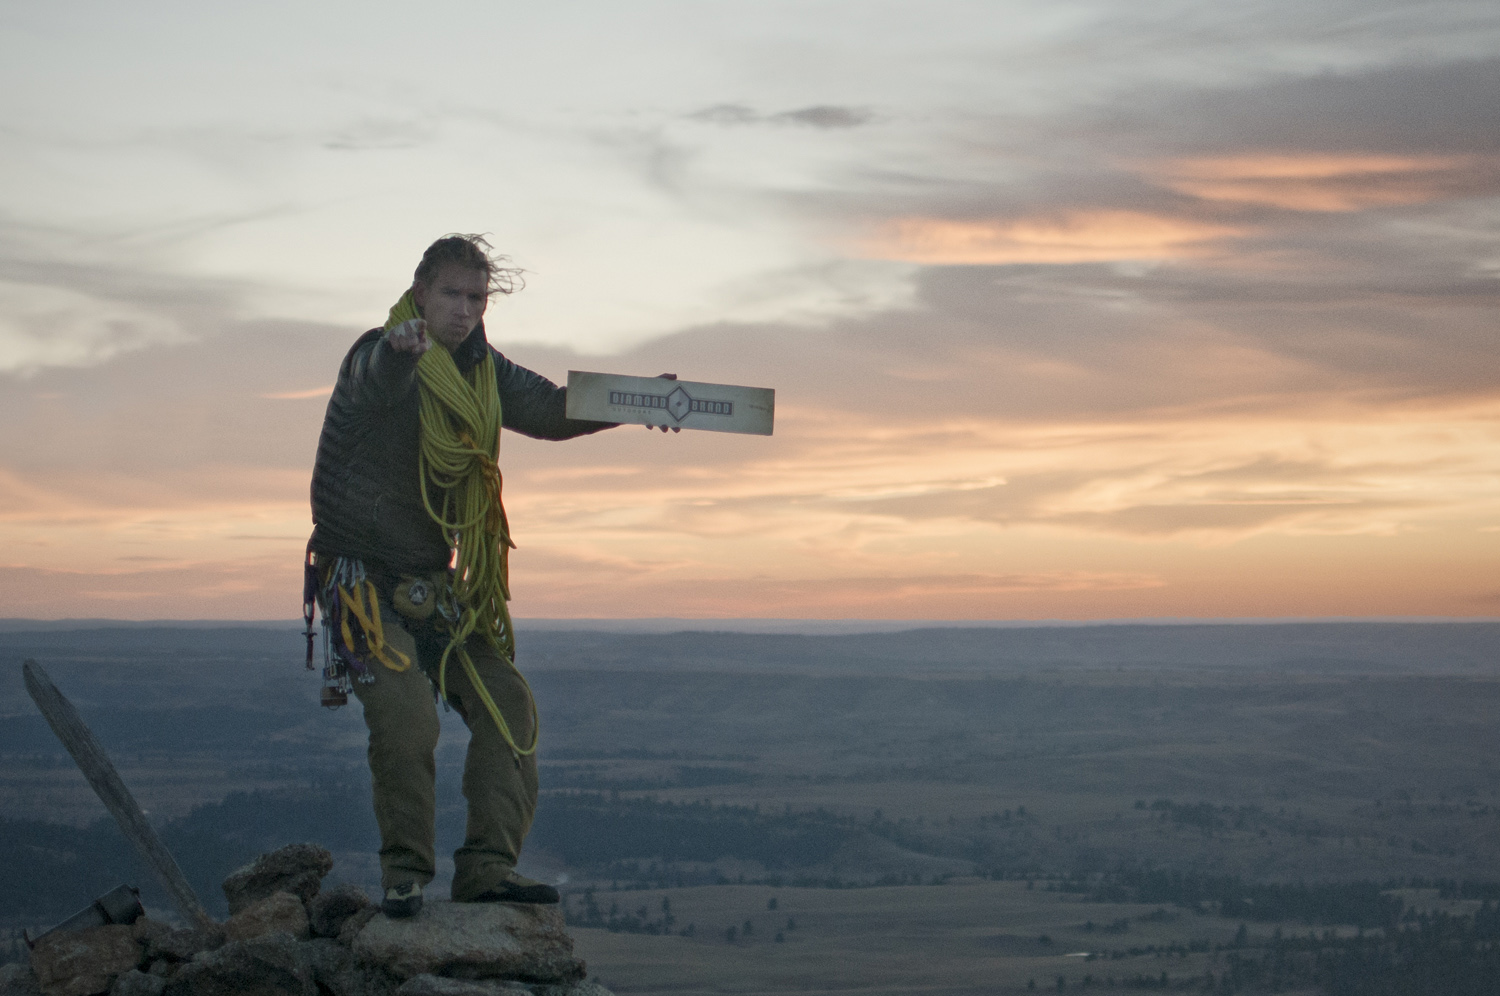 """There was suppose to be sign on the summit saying """"No Climbing Above This Point"""" which Bryson was going to stand on top of, but all that remained was the post (leaning to the bottom-left corner), so this was the sunset image we ended up gettingfor Diamond Brand, based out of North Carolina."""